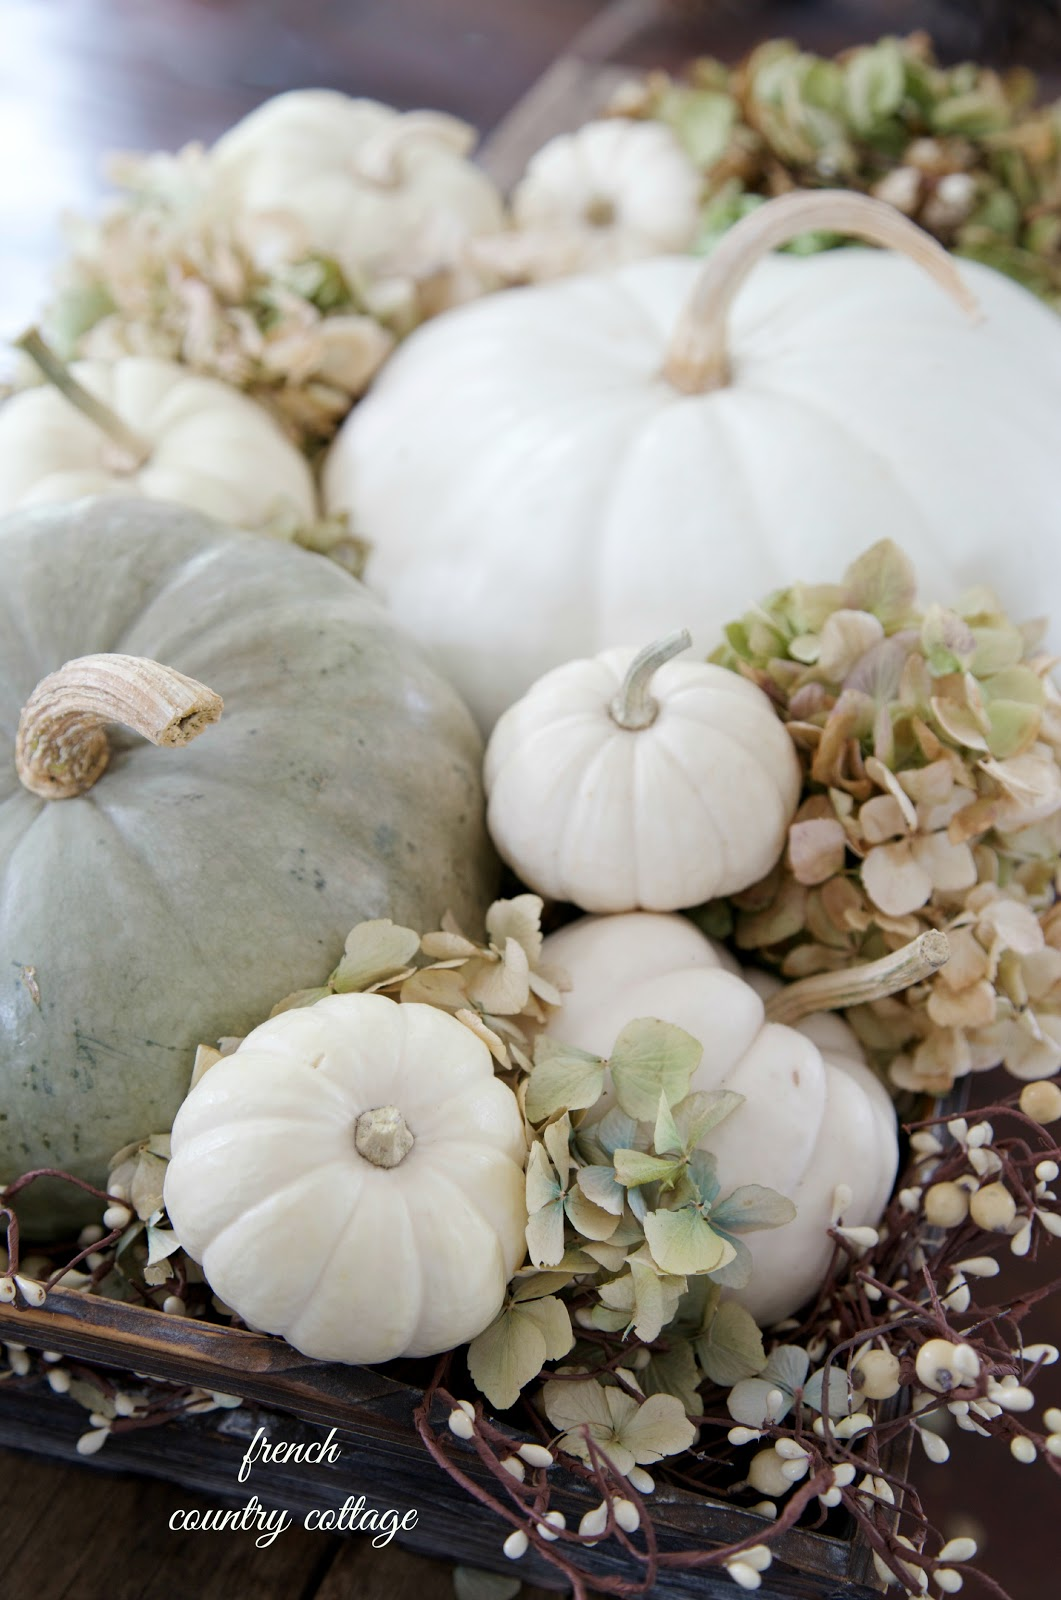 Creative Ideas for Fall or Thanksgiving Table Settings and Home Decor 3